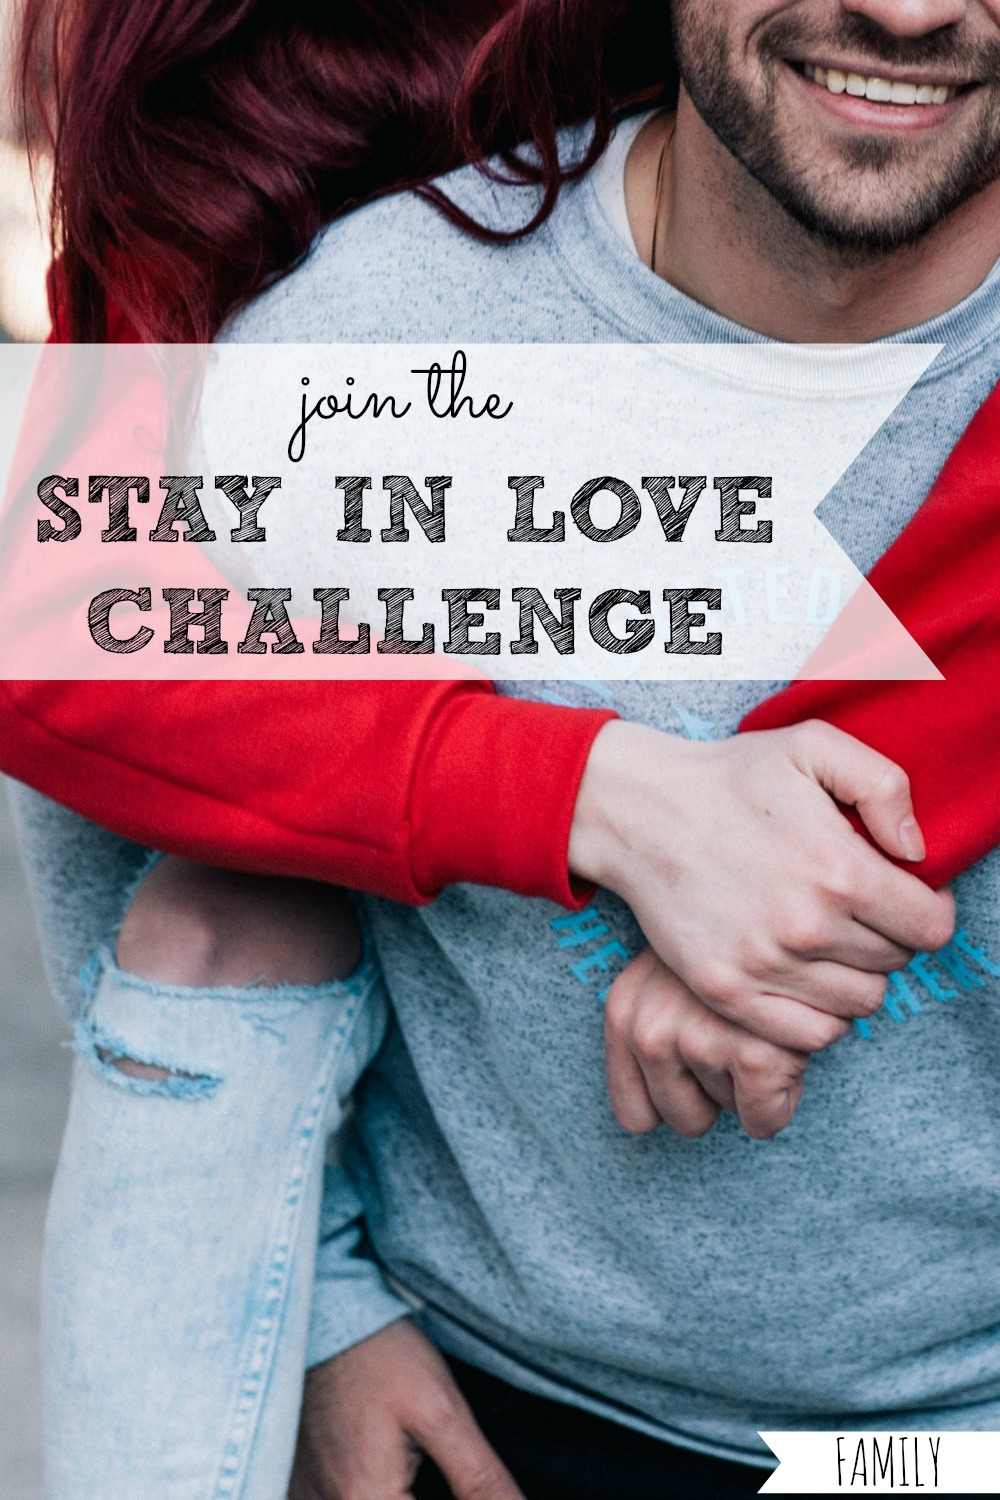 Has your connection with your partner started to fade or disappear altogether? Do you want to reconnect again in a meaningful way? Or maybe just strengthen your already amazing connection? Sign up for our 5-day email challenge, and we'll send you an email with fresh insight and fun relationship